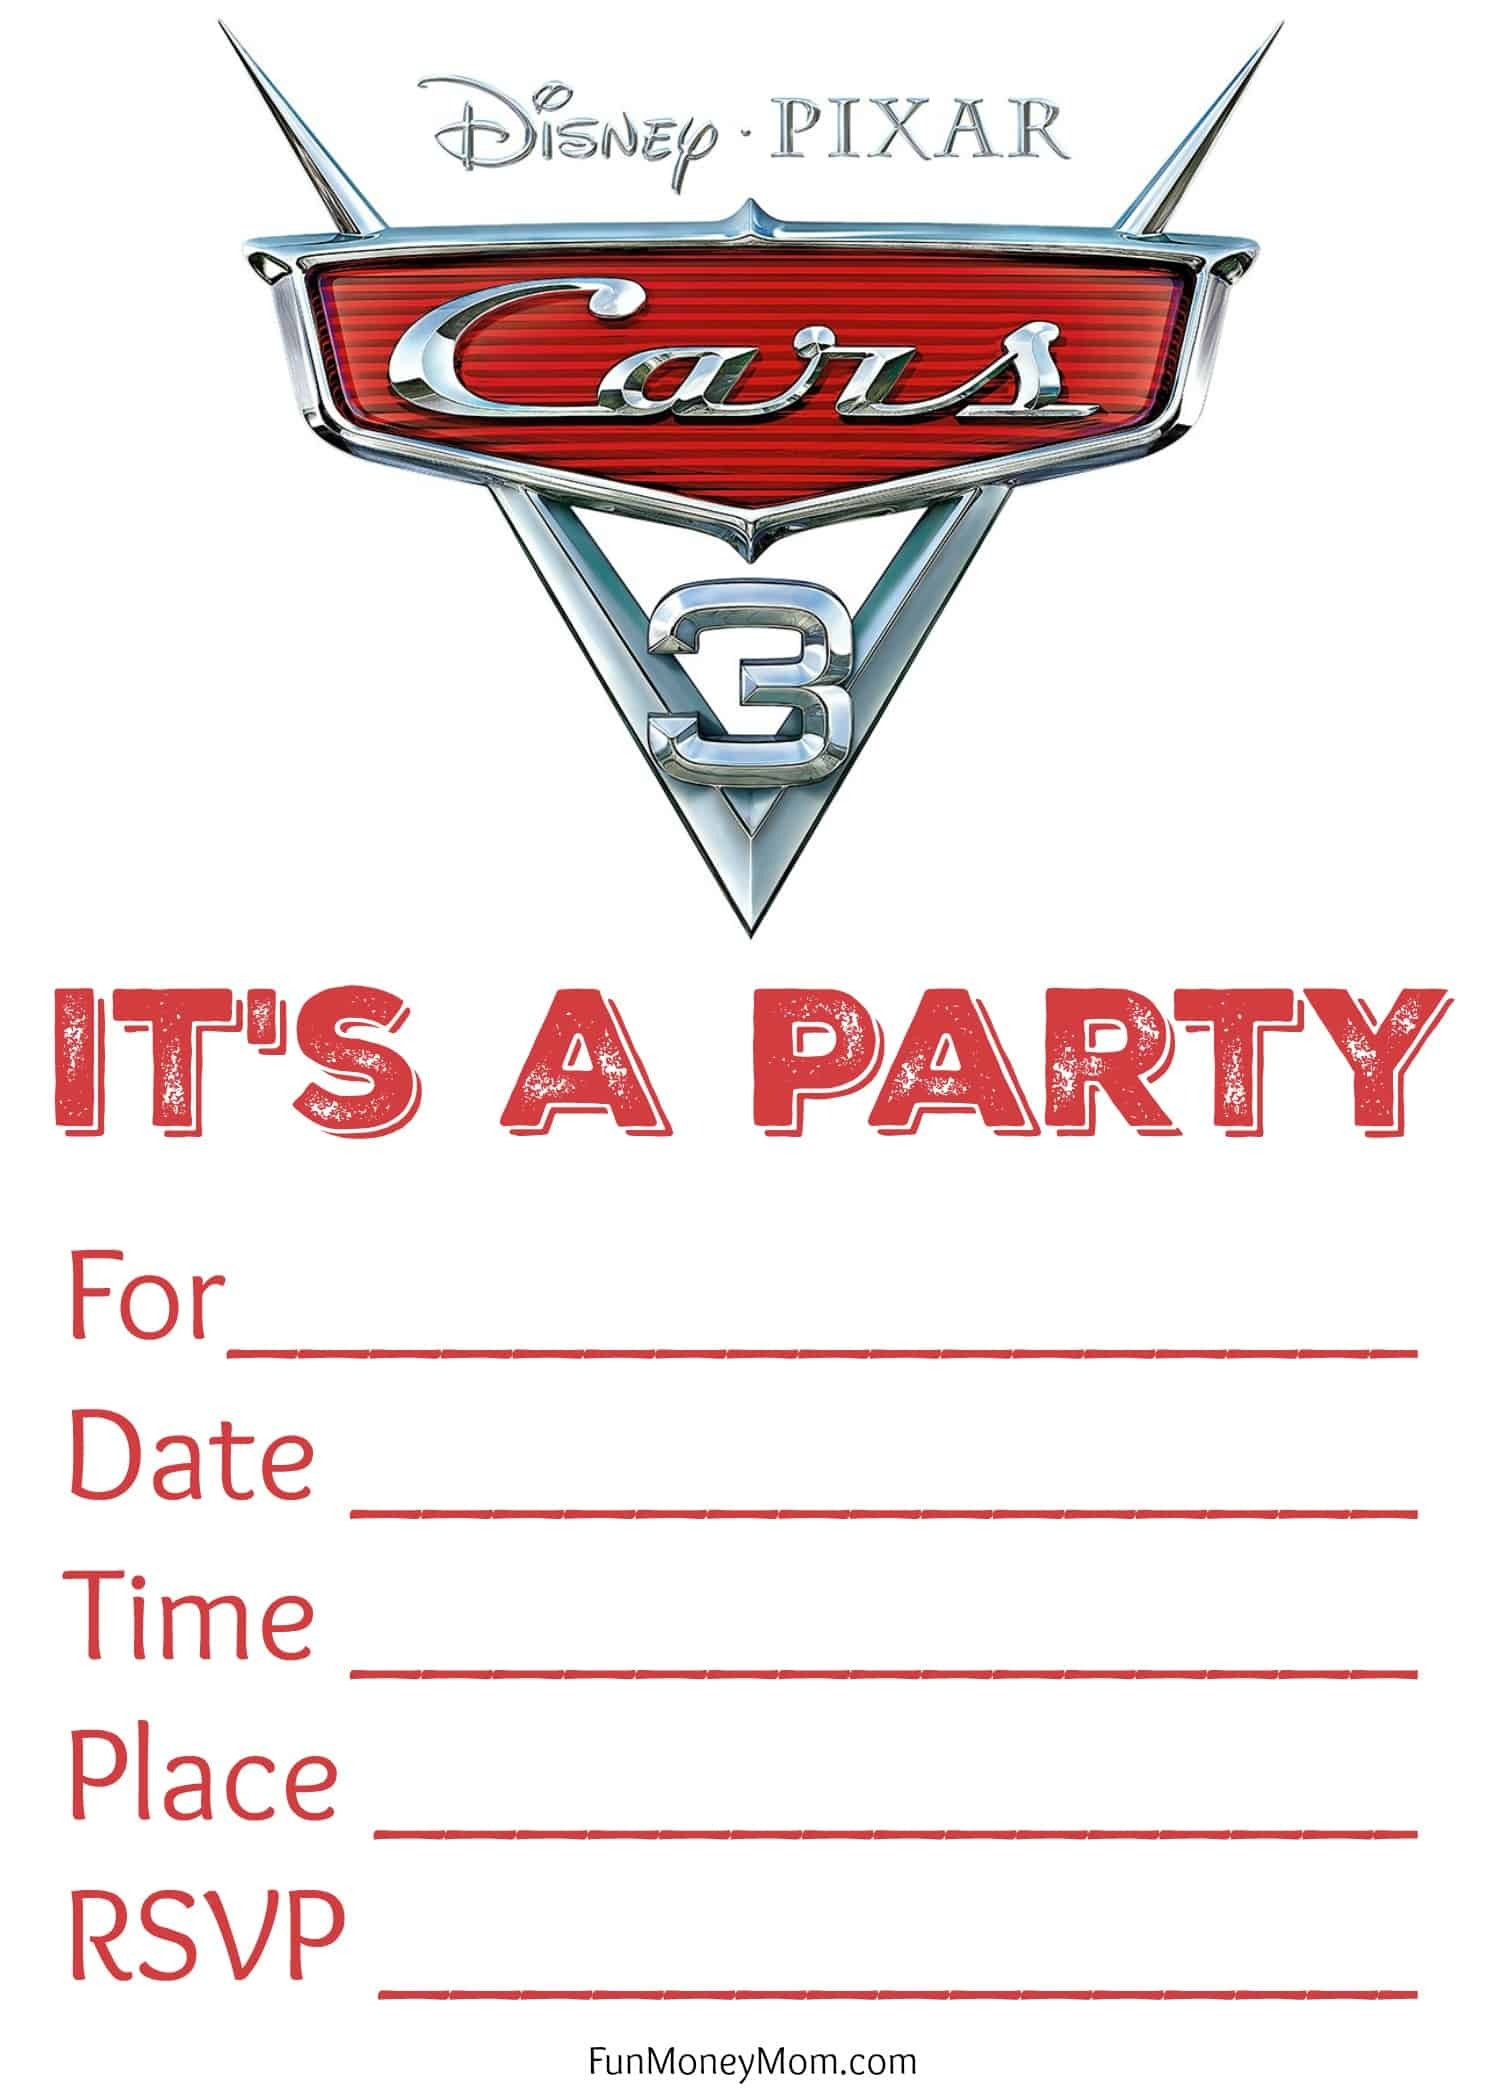 I Made Another Set Of Cars 3 Birthday Invitations For Those Who Would Rather Print Two At A Time On 85 X 11 Card Stock